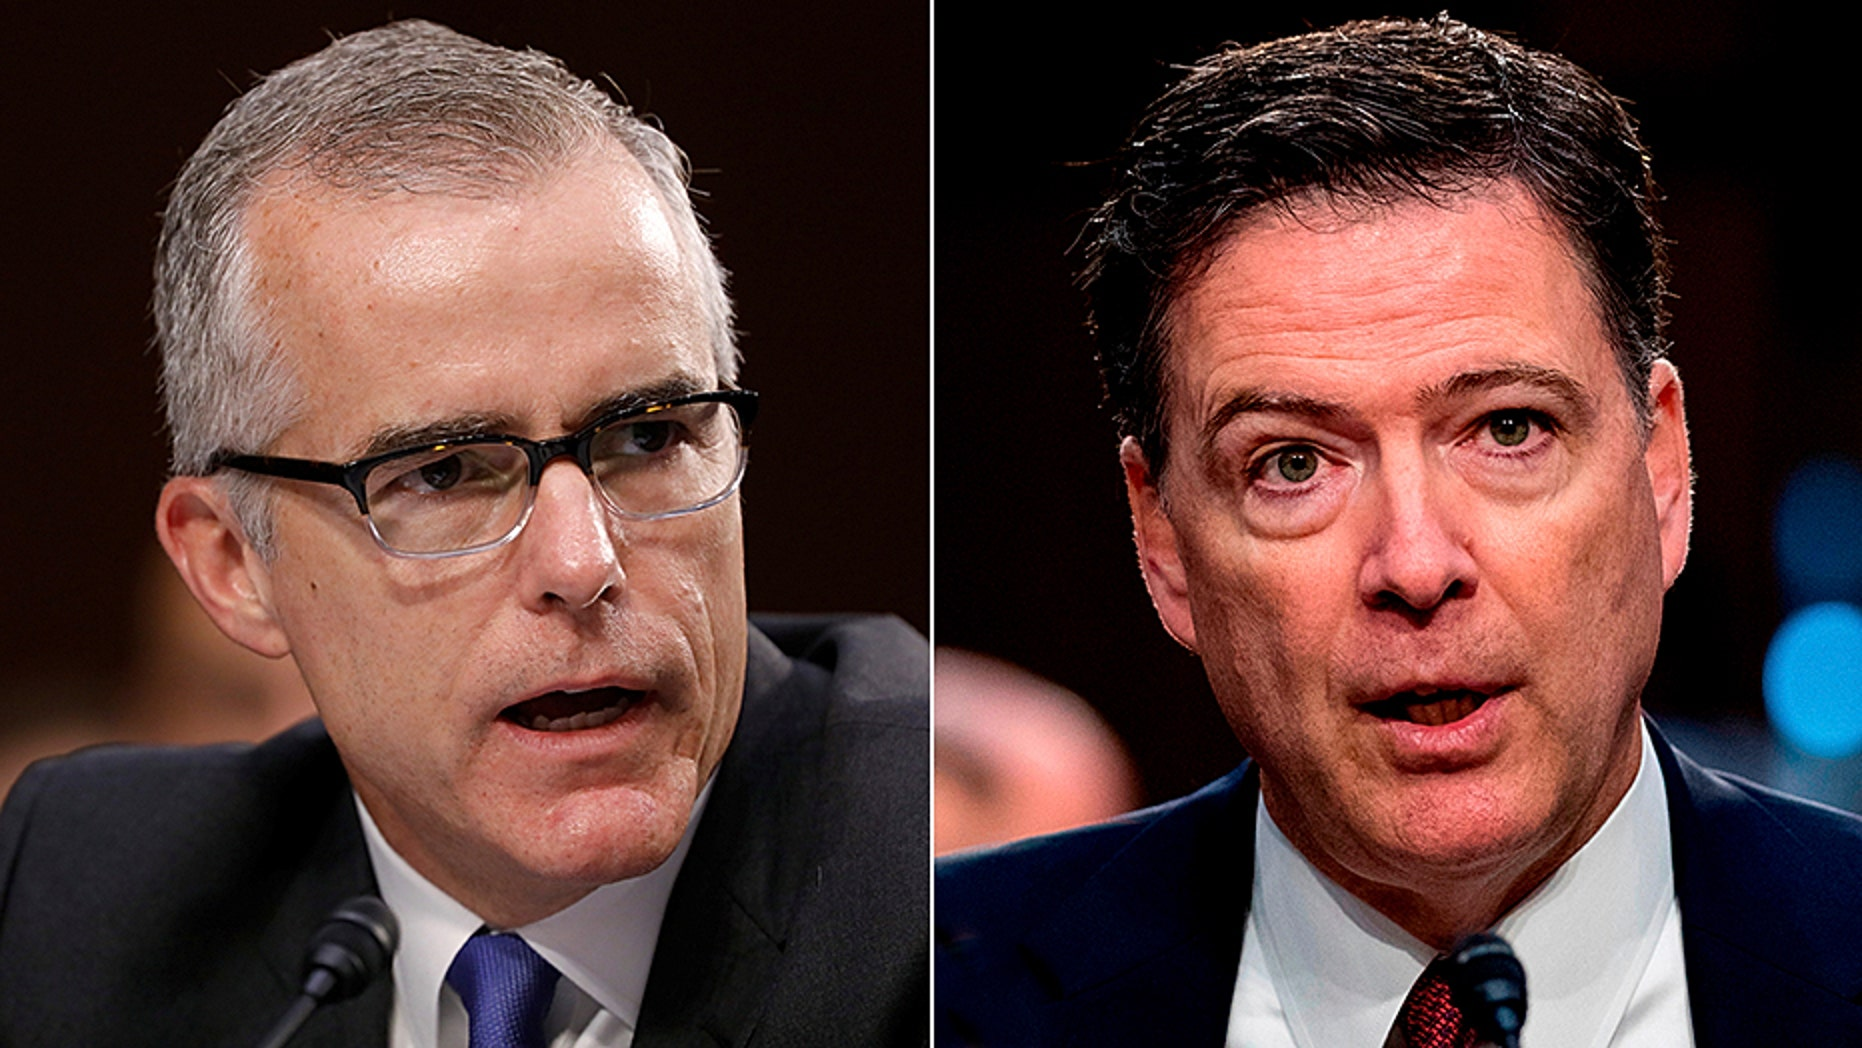 Former FBI Director James Comey, right, triggered the inspector general investigation that led to the firing of former FBI Deputy Director Andrew McCabe, left.